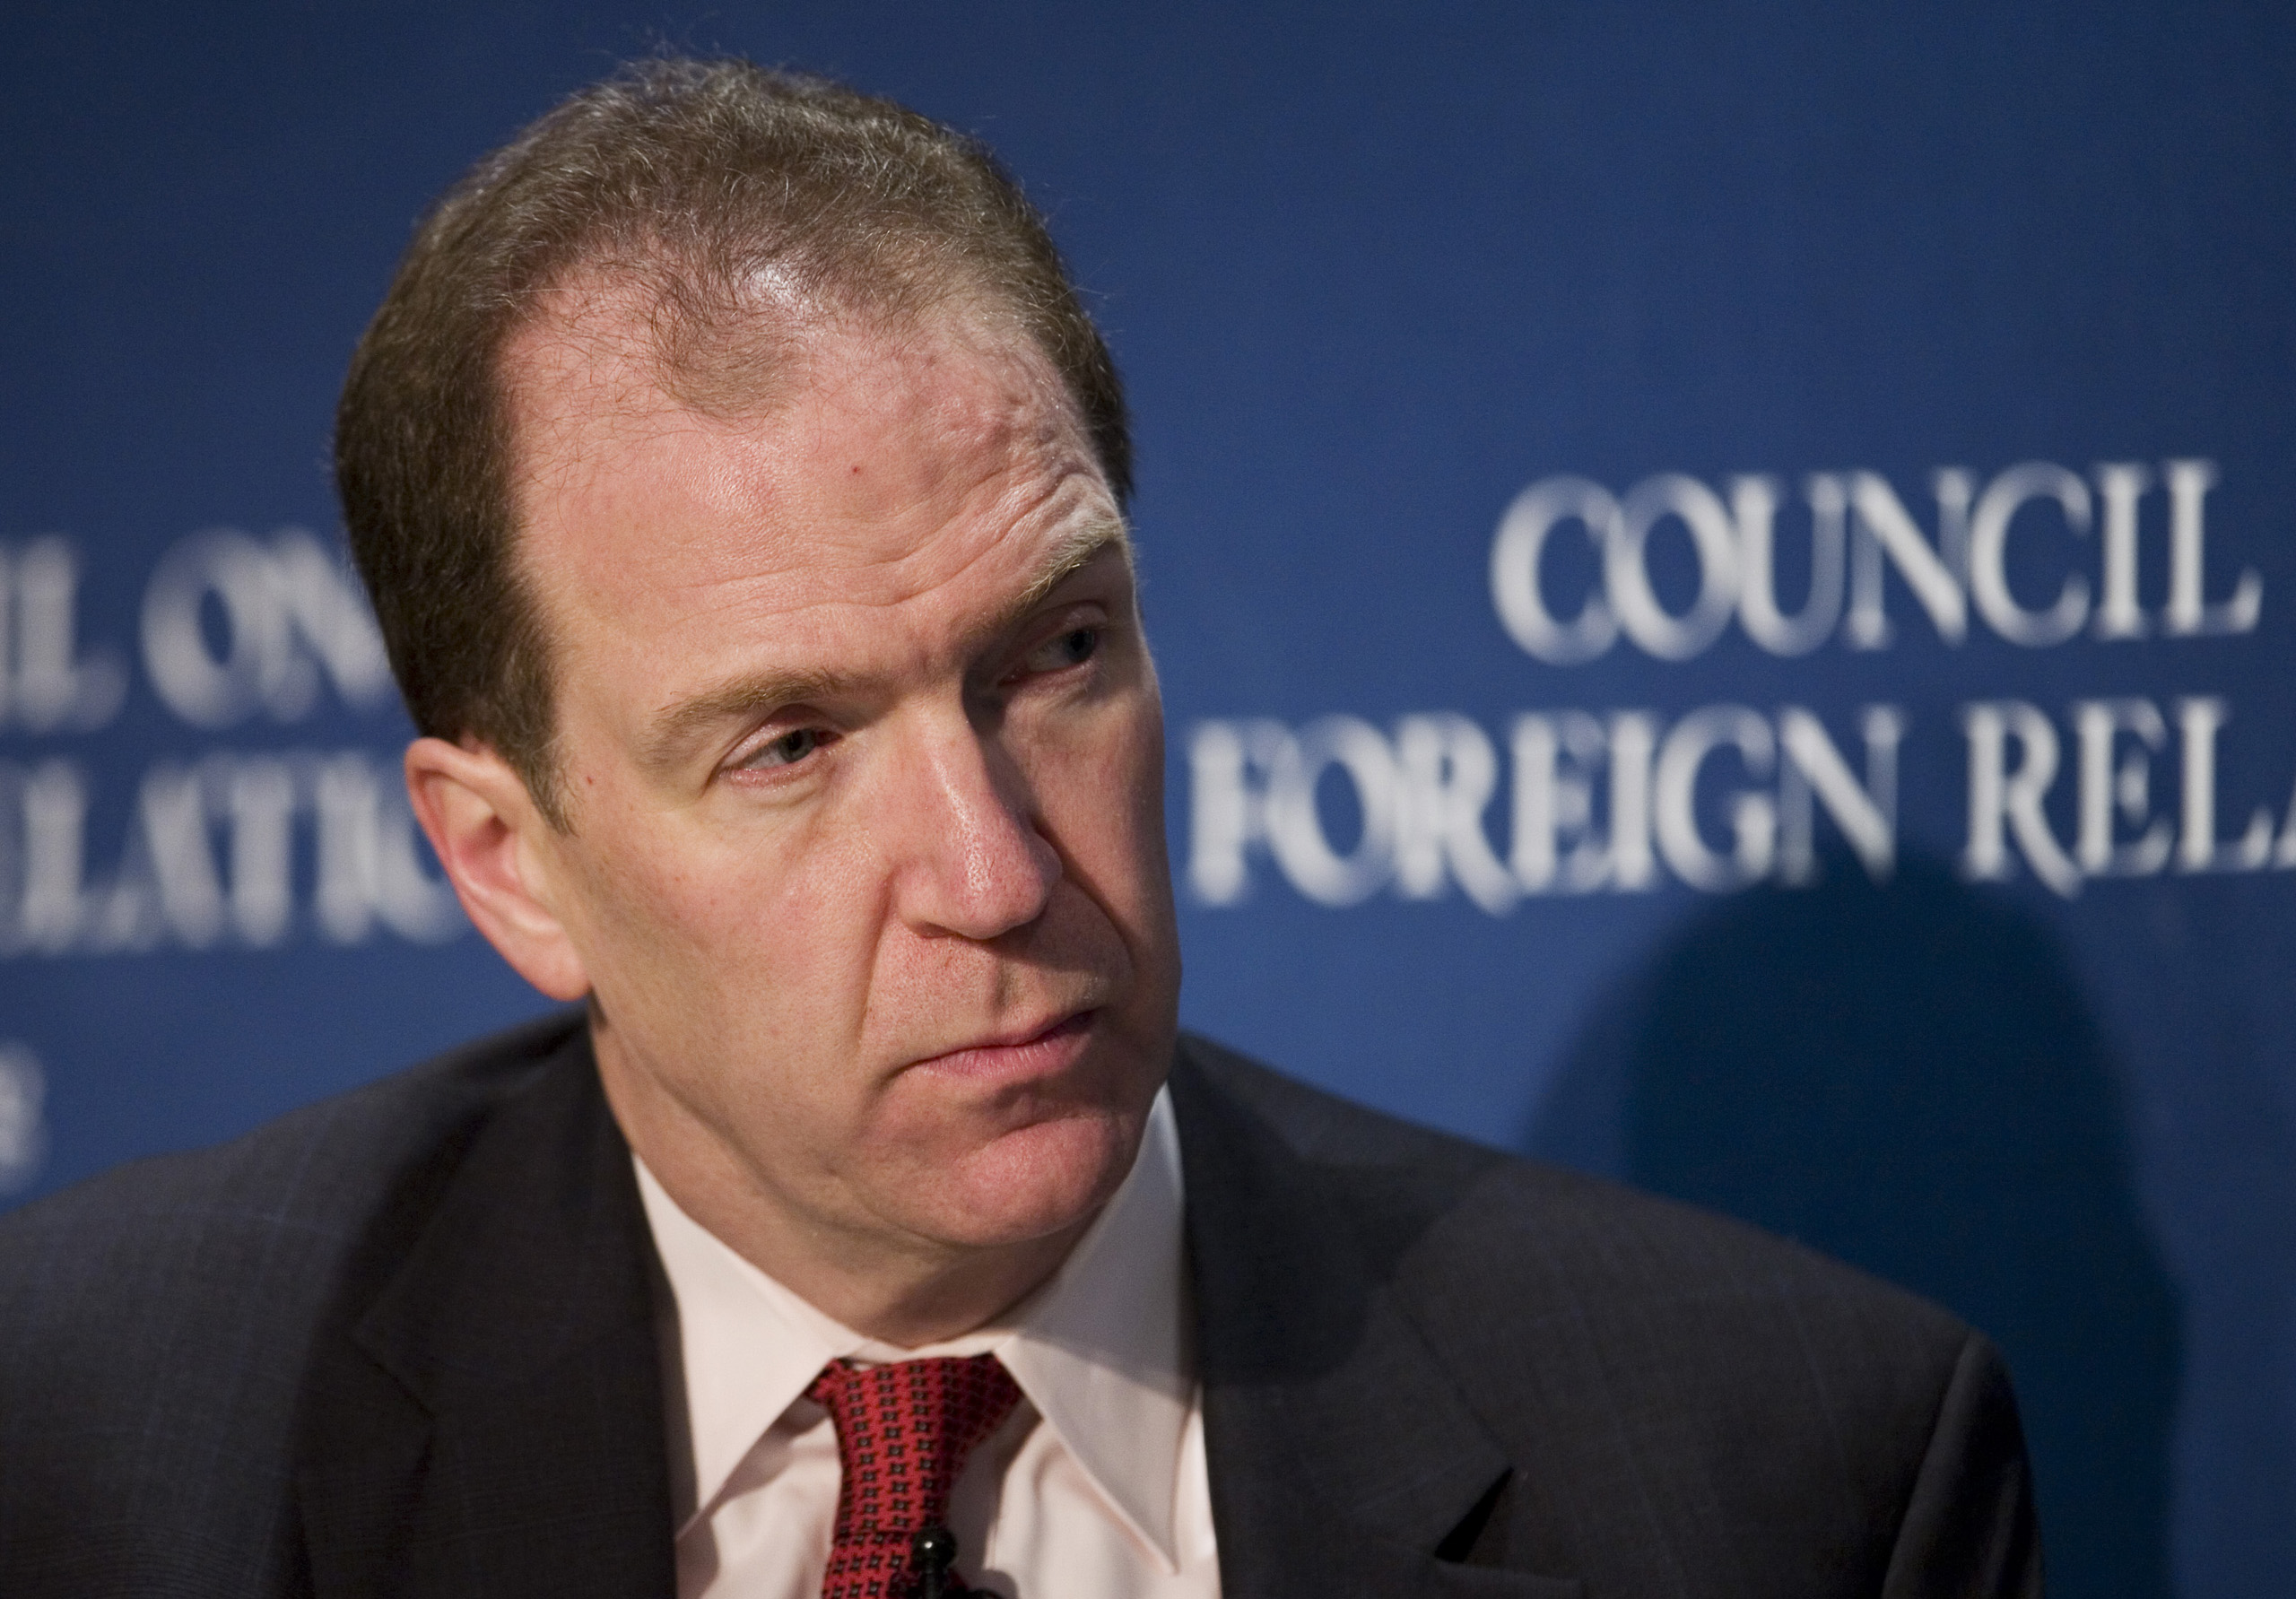 David Malpass, the Chief Economist at Bear, Stearns and Co. Inc., speaks at the Council on Foreign Relations in New York City on Nov. 19, 2007.